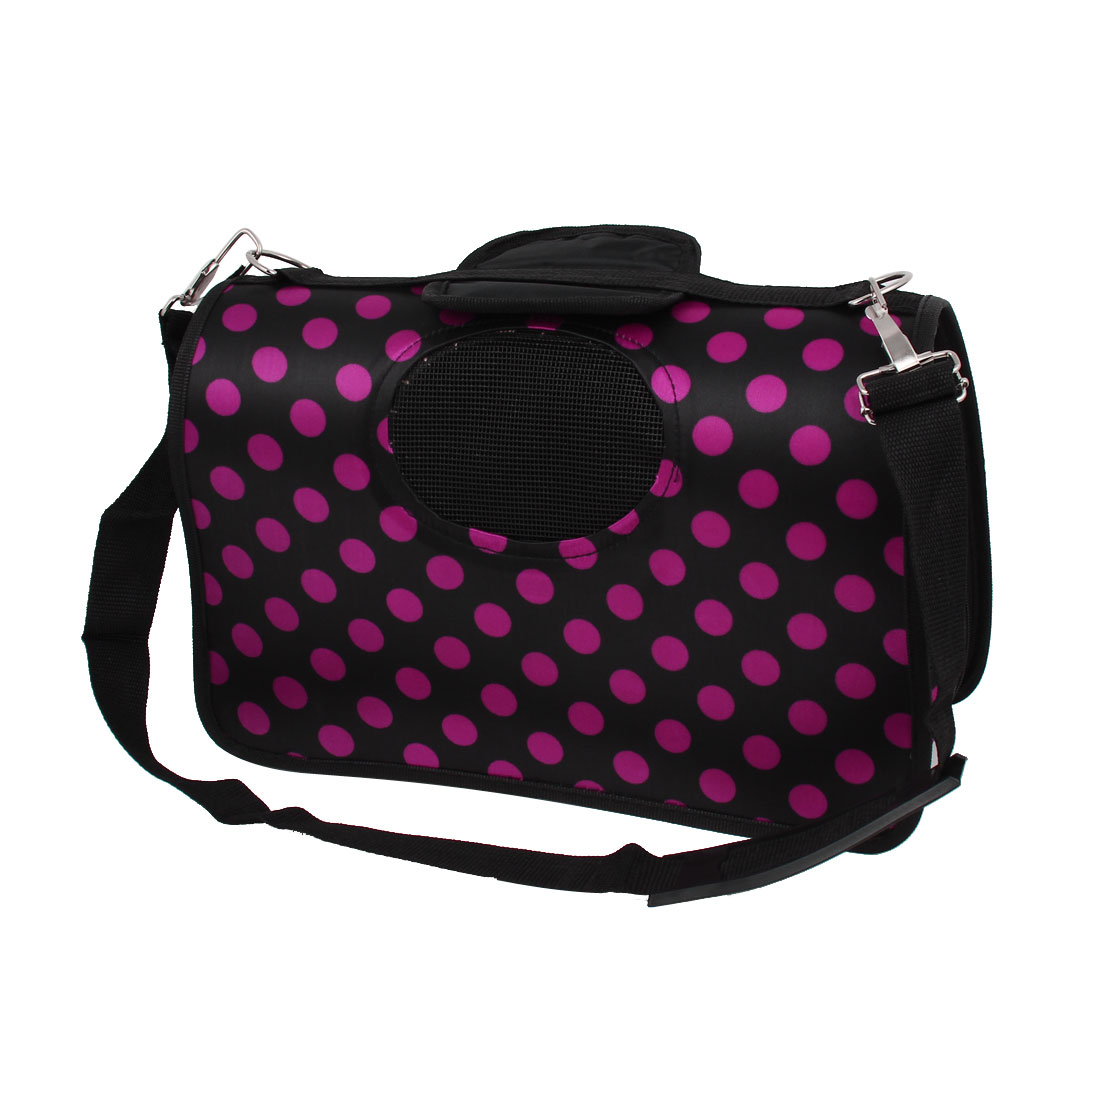 Outdoor Hiking Dots Pattern Handbag Tote Bag Carrying Carrier Fuchsia Black S for Pet Dog Doggy